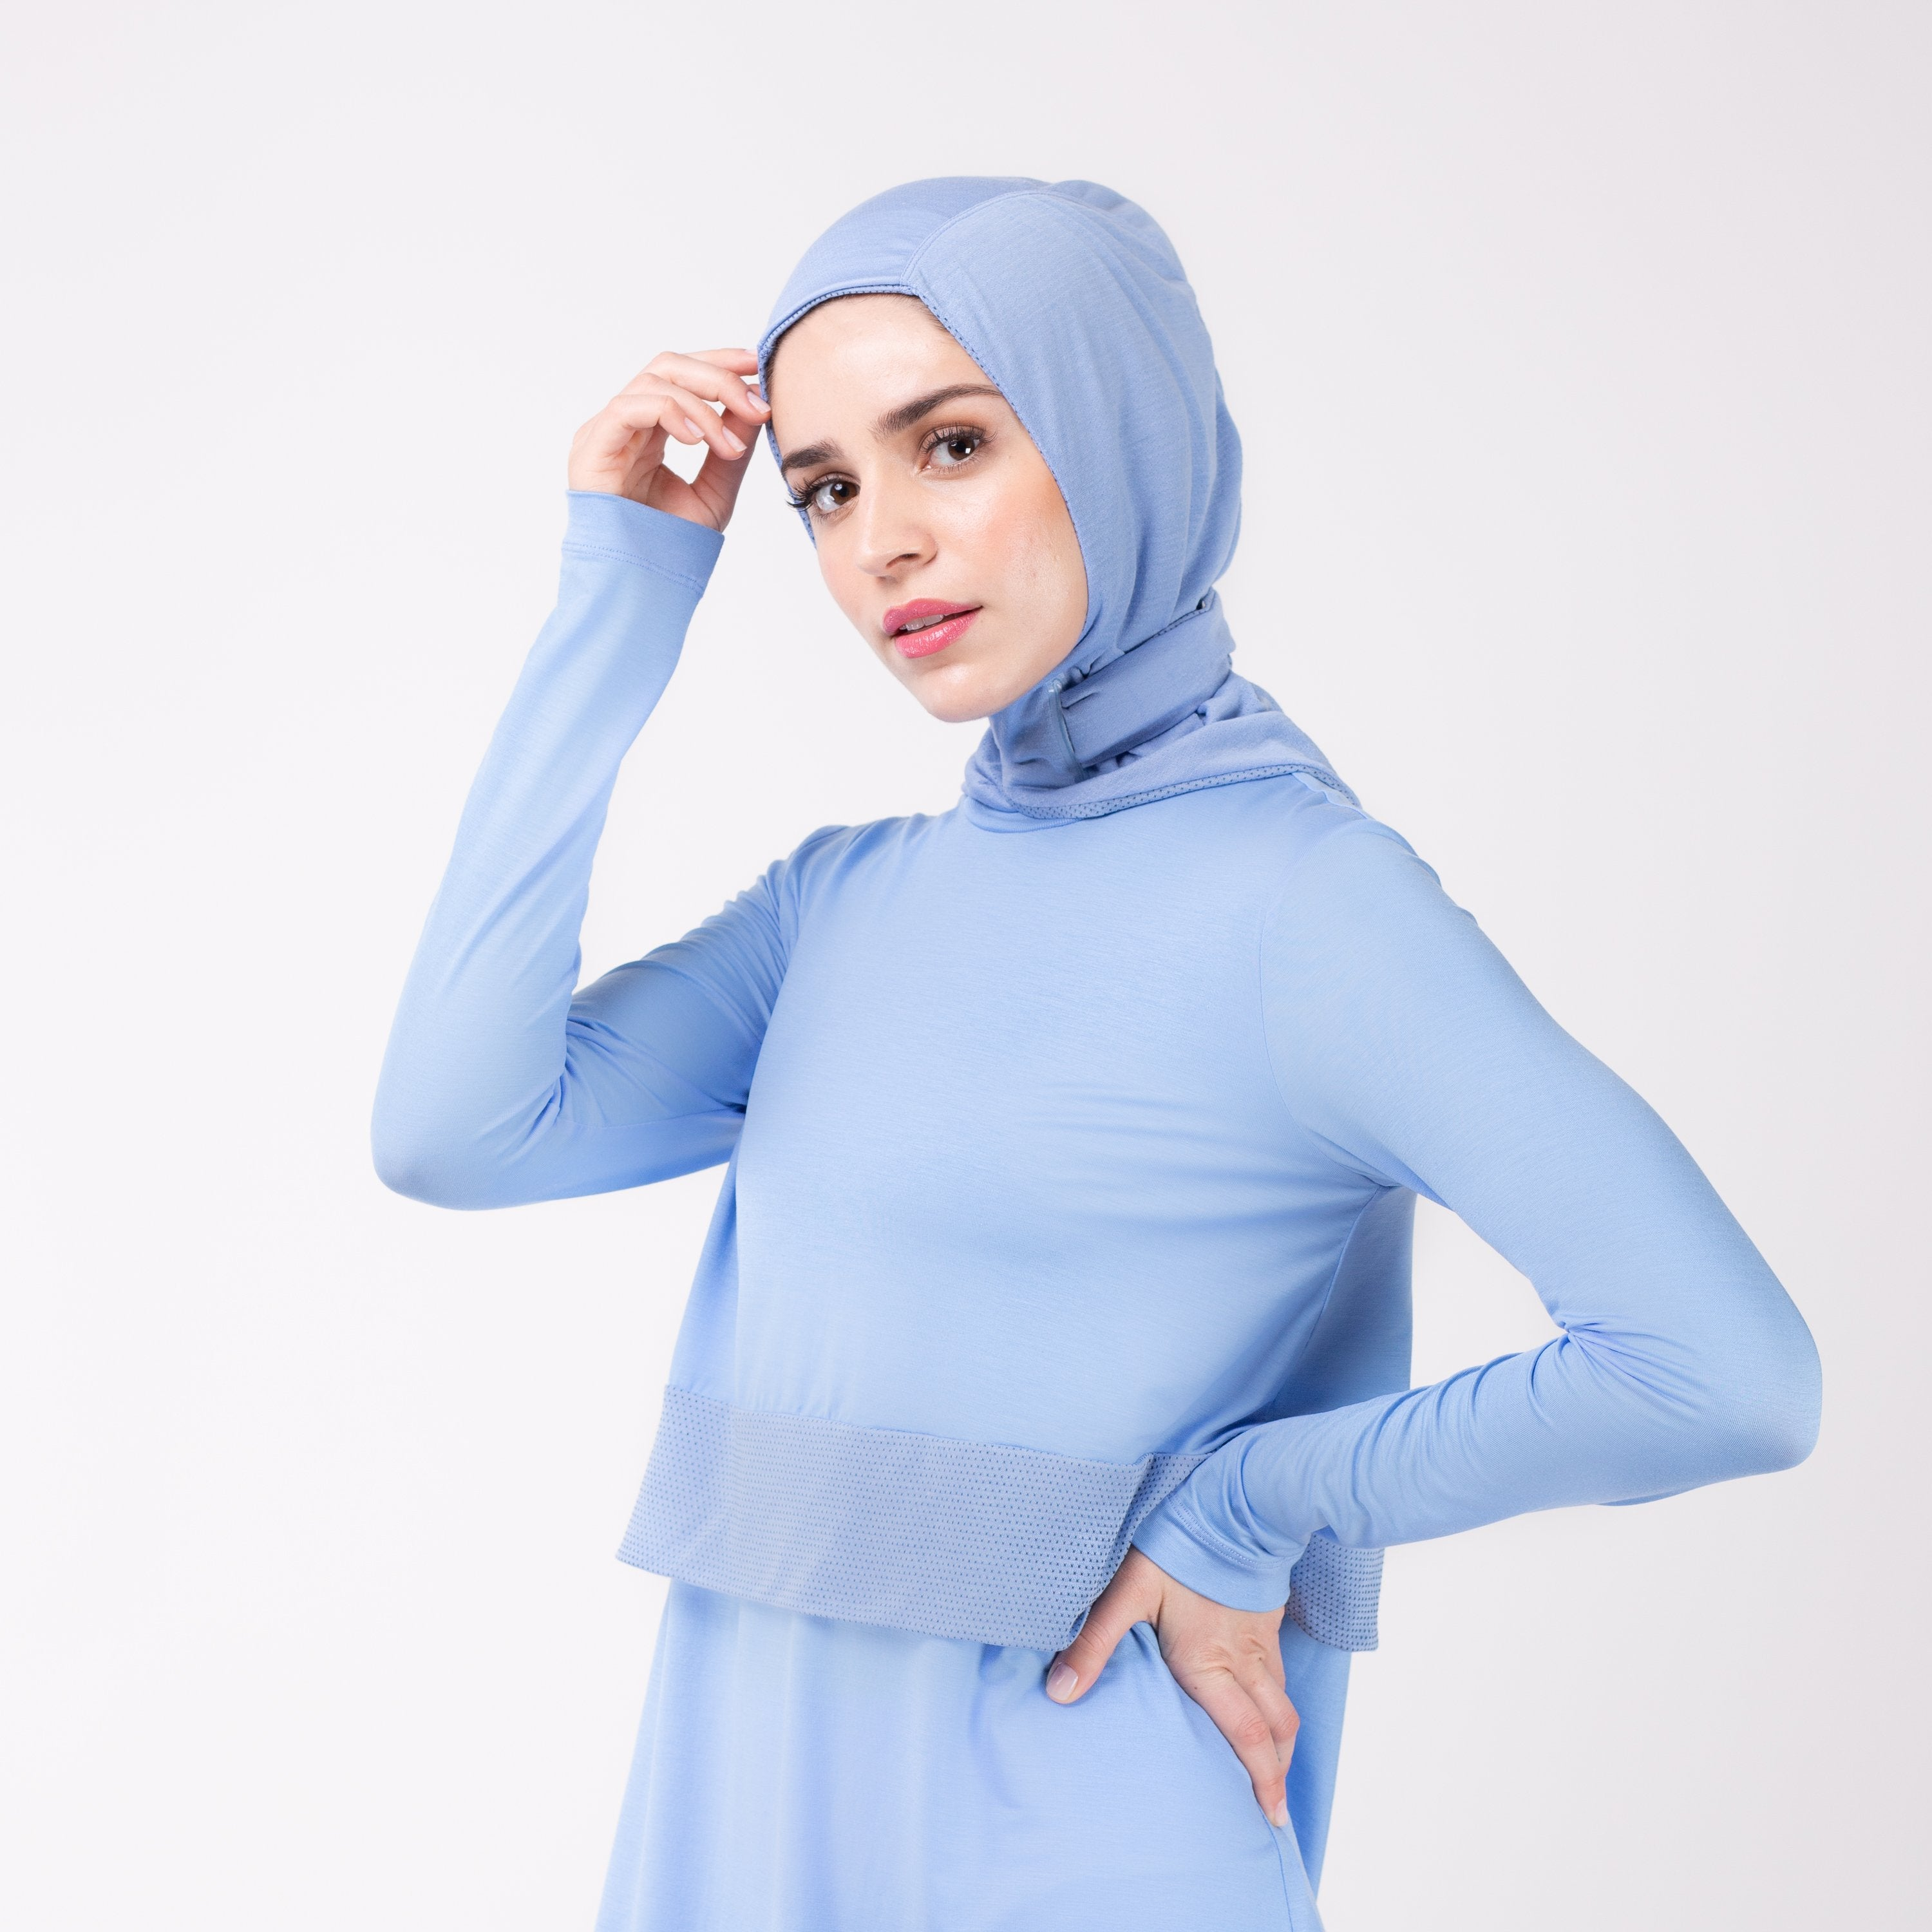 Woman facing left in a sky blue shirt with a matching sky blue HAWA hijab, touching the hijab fabric with her right and and her left hand on her hip.